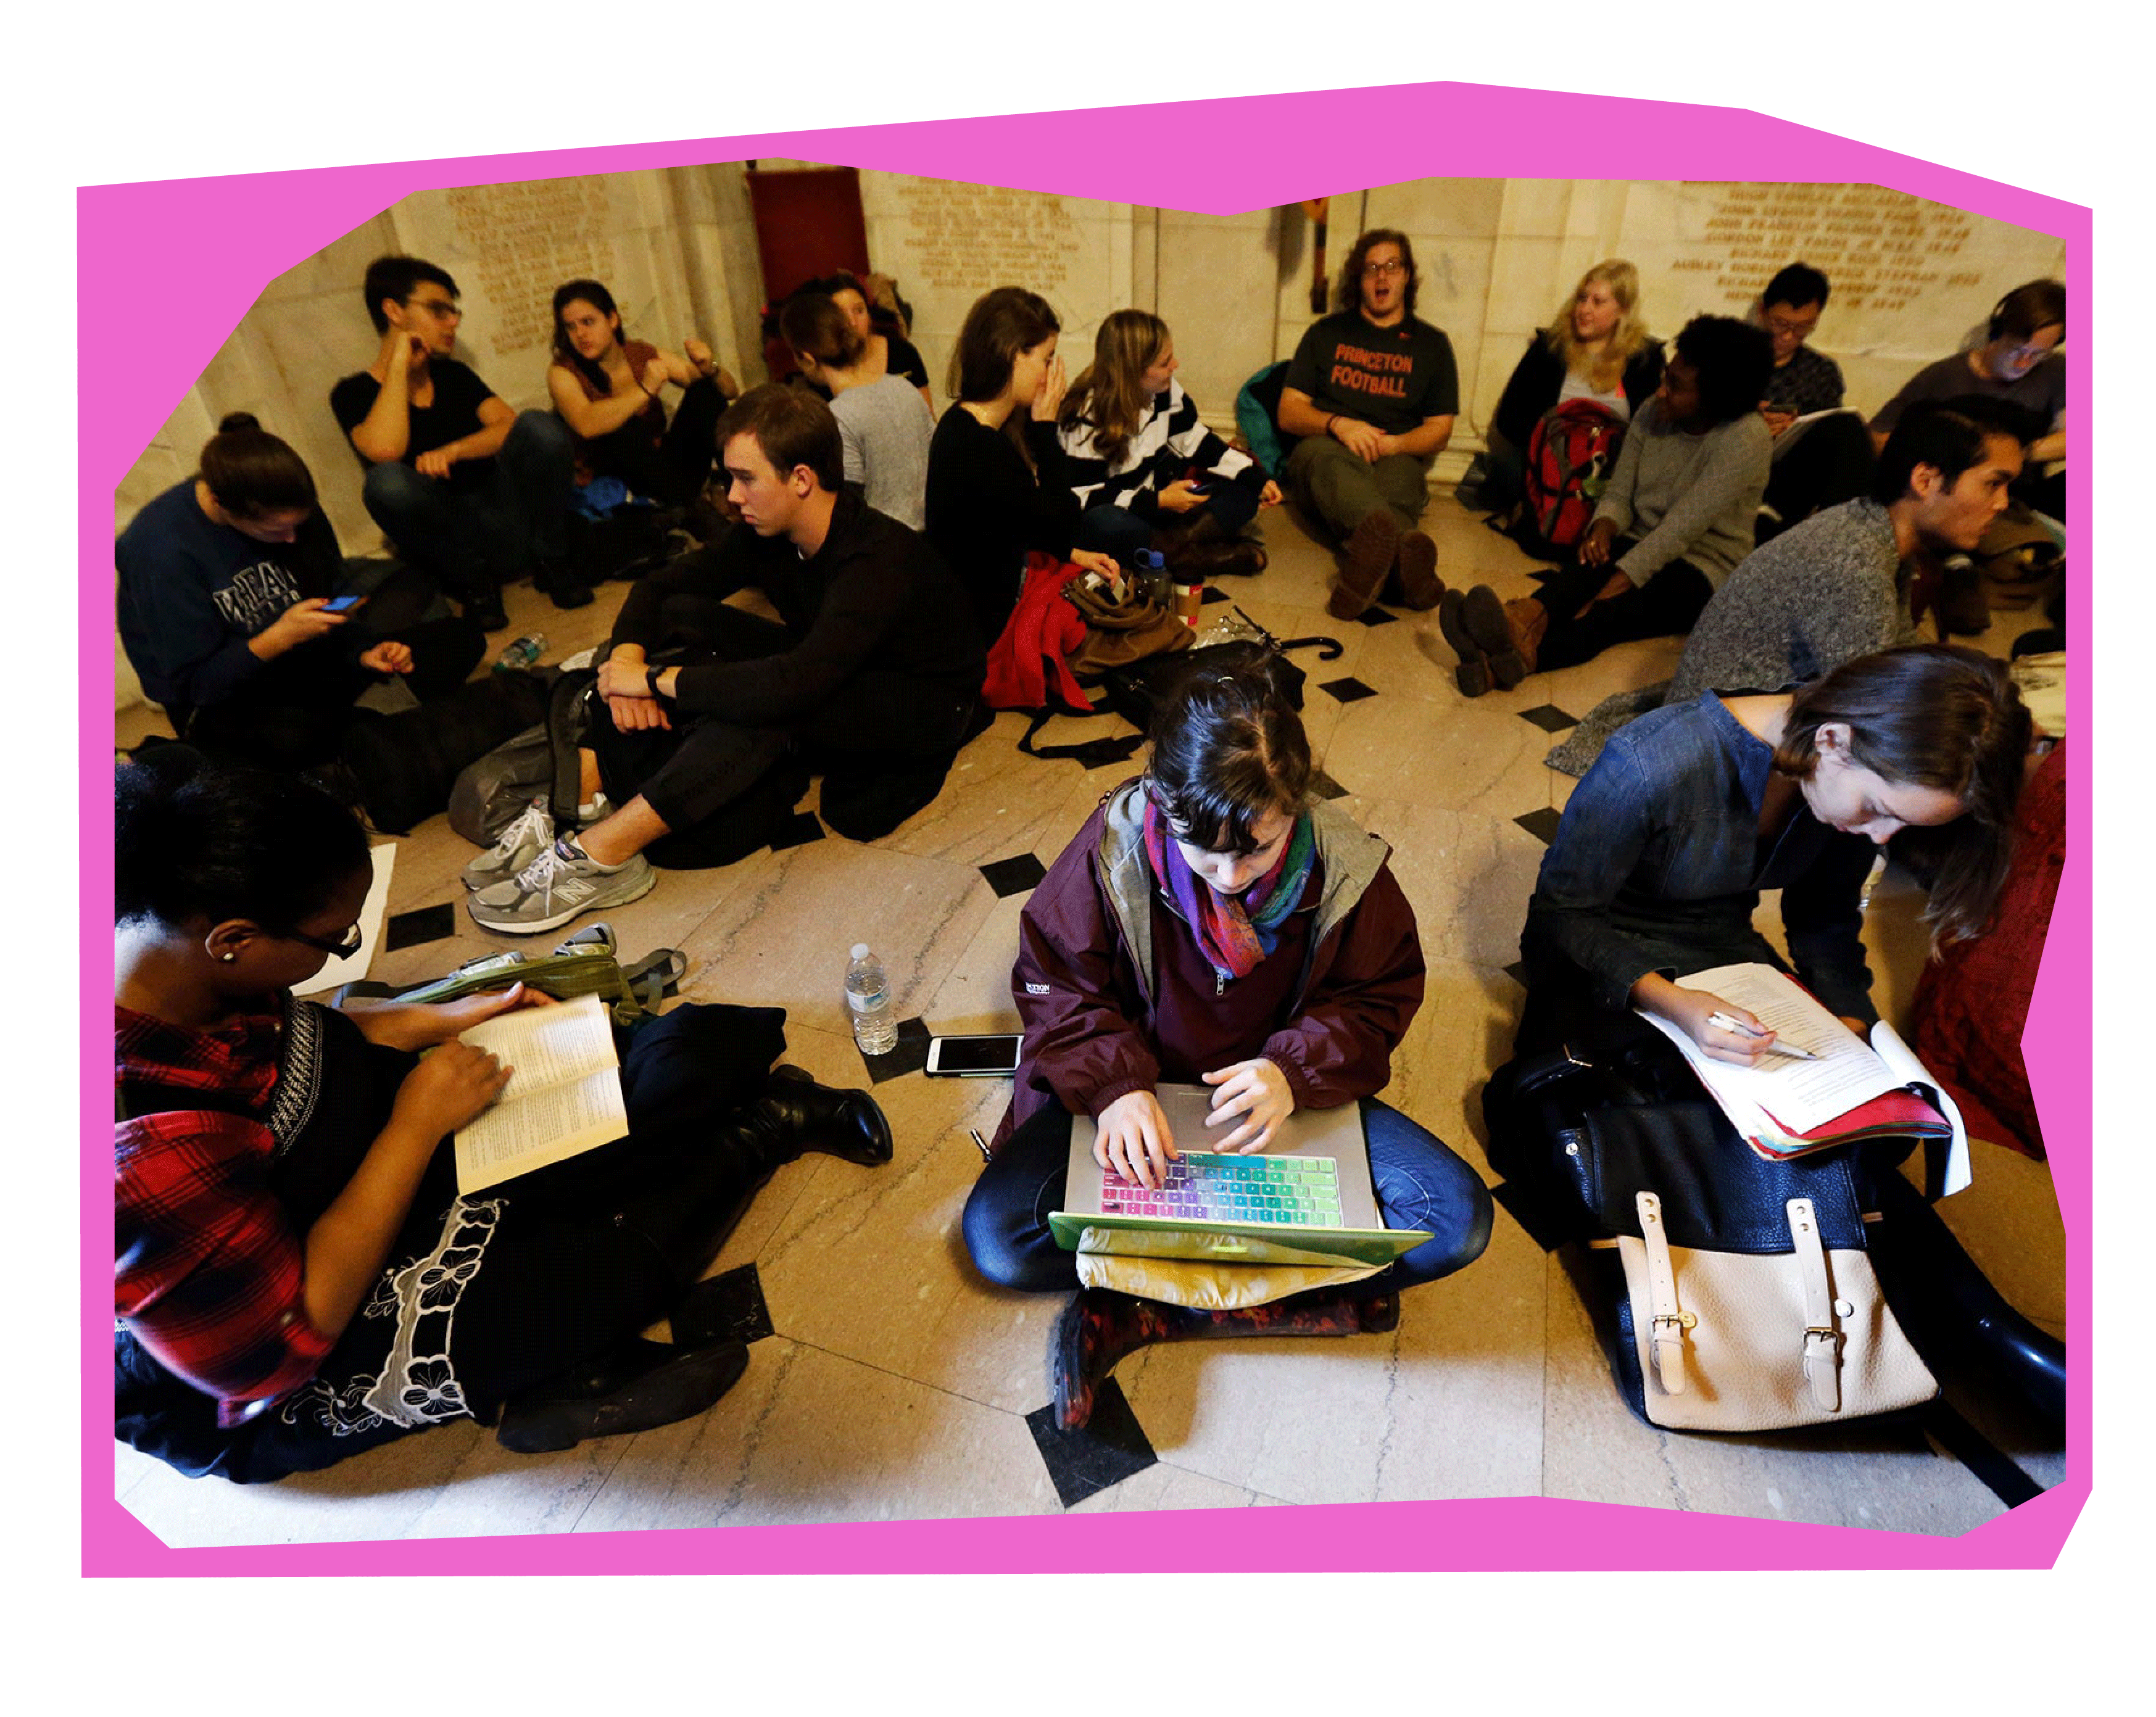 A group of students talking and working on the floors of Nassau Hall during the 2015 sit-in.